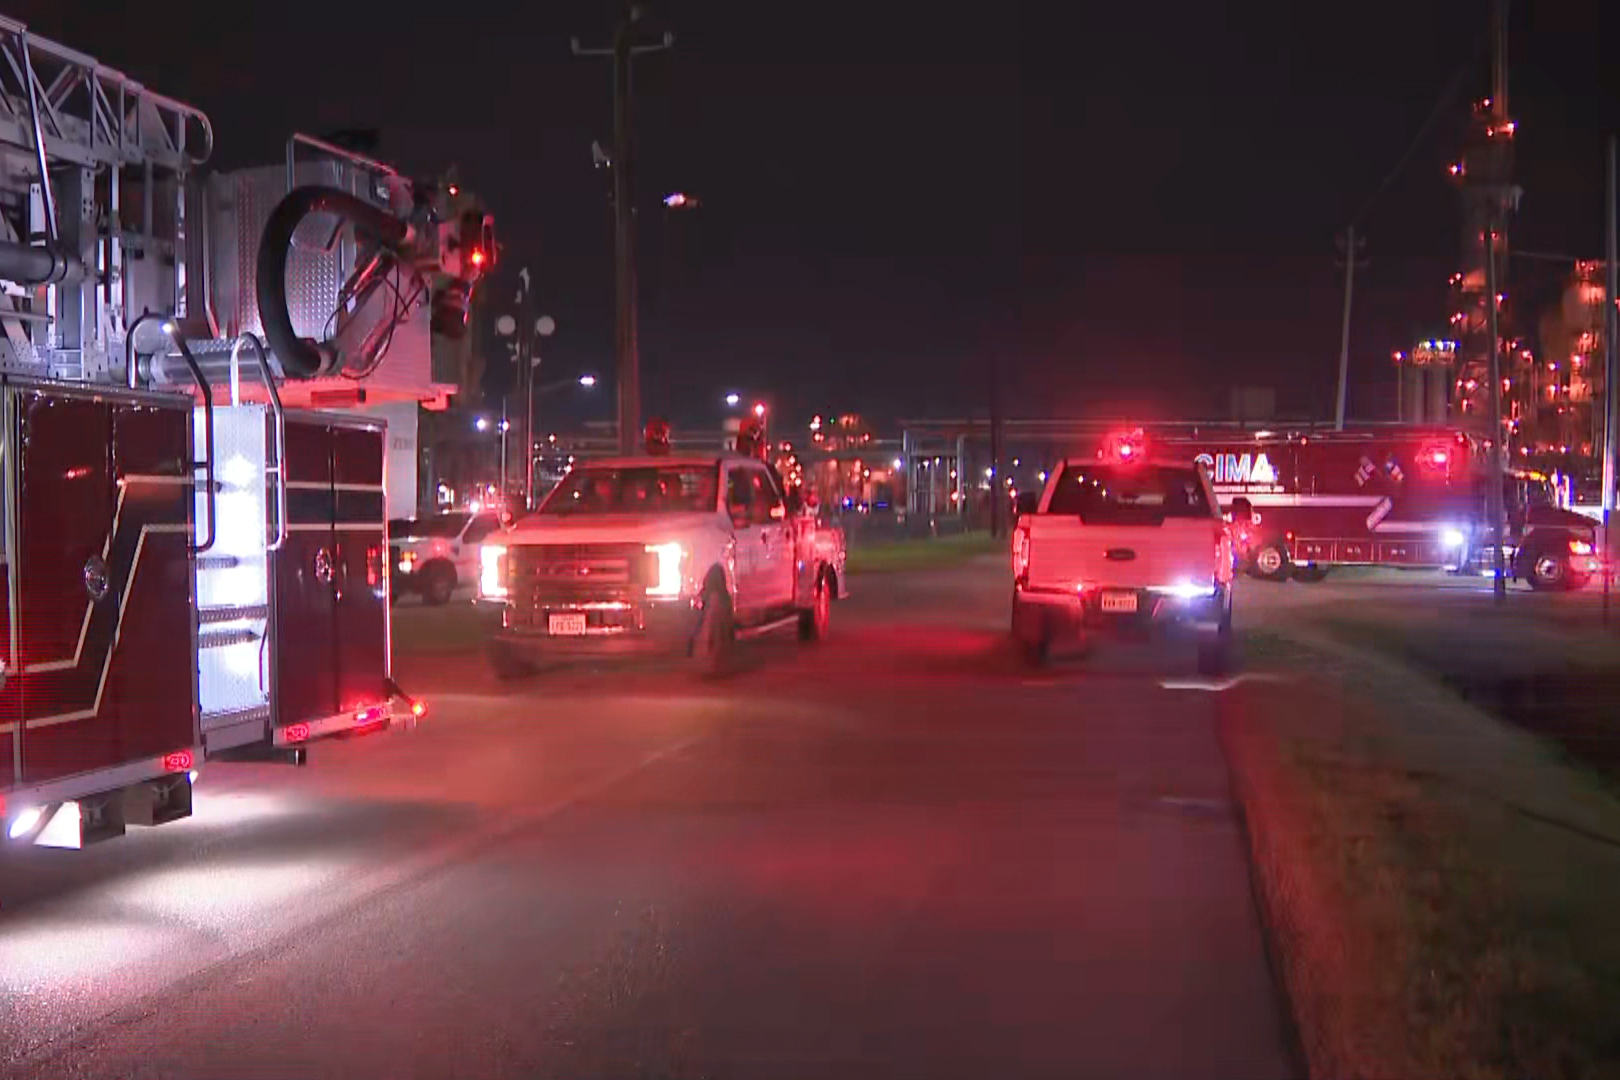 2 dead after leak at Texas chemical plant